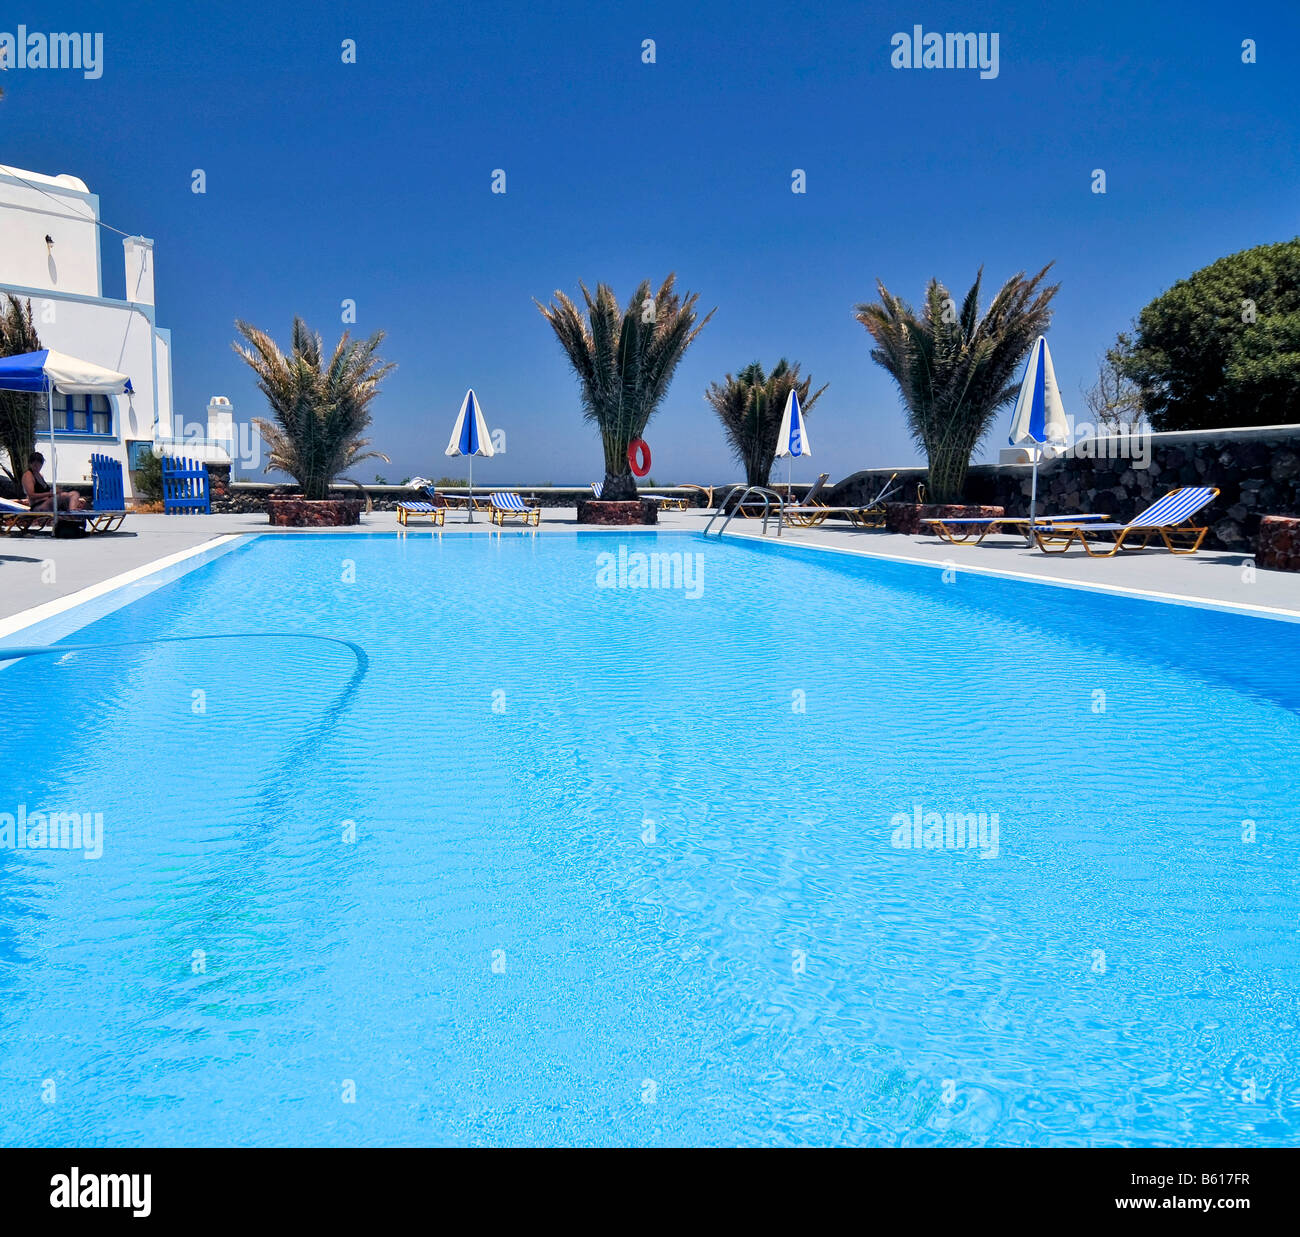 Deserted swimming pool with palms, Santorini, Cyclades, Greece, Europe - Stock Image